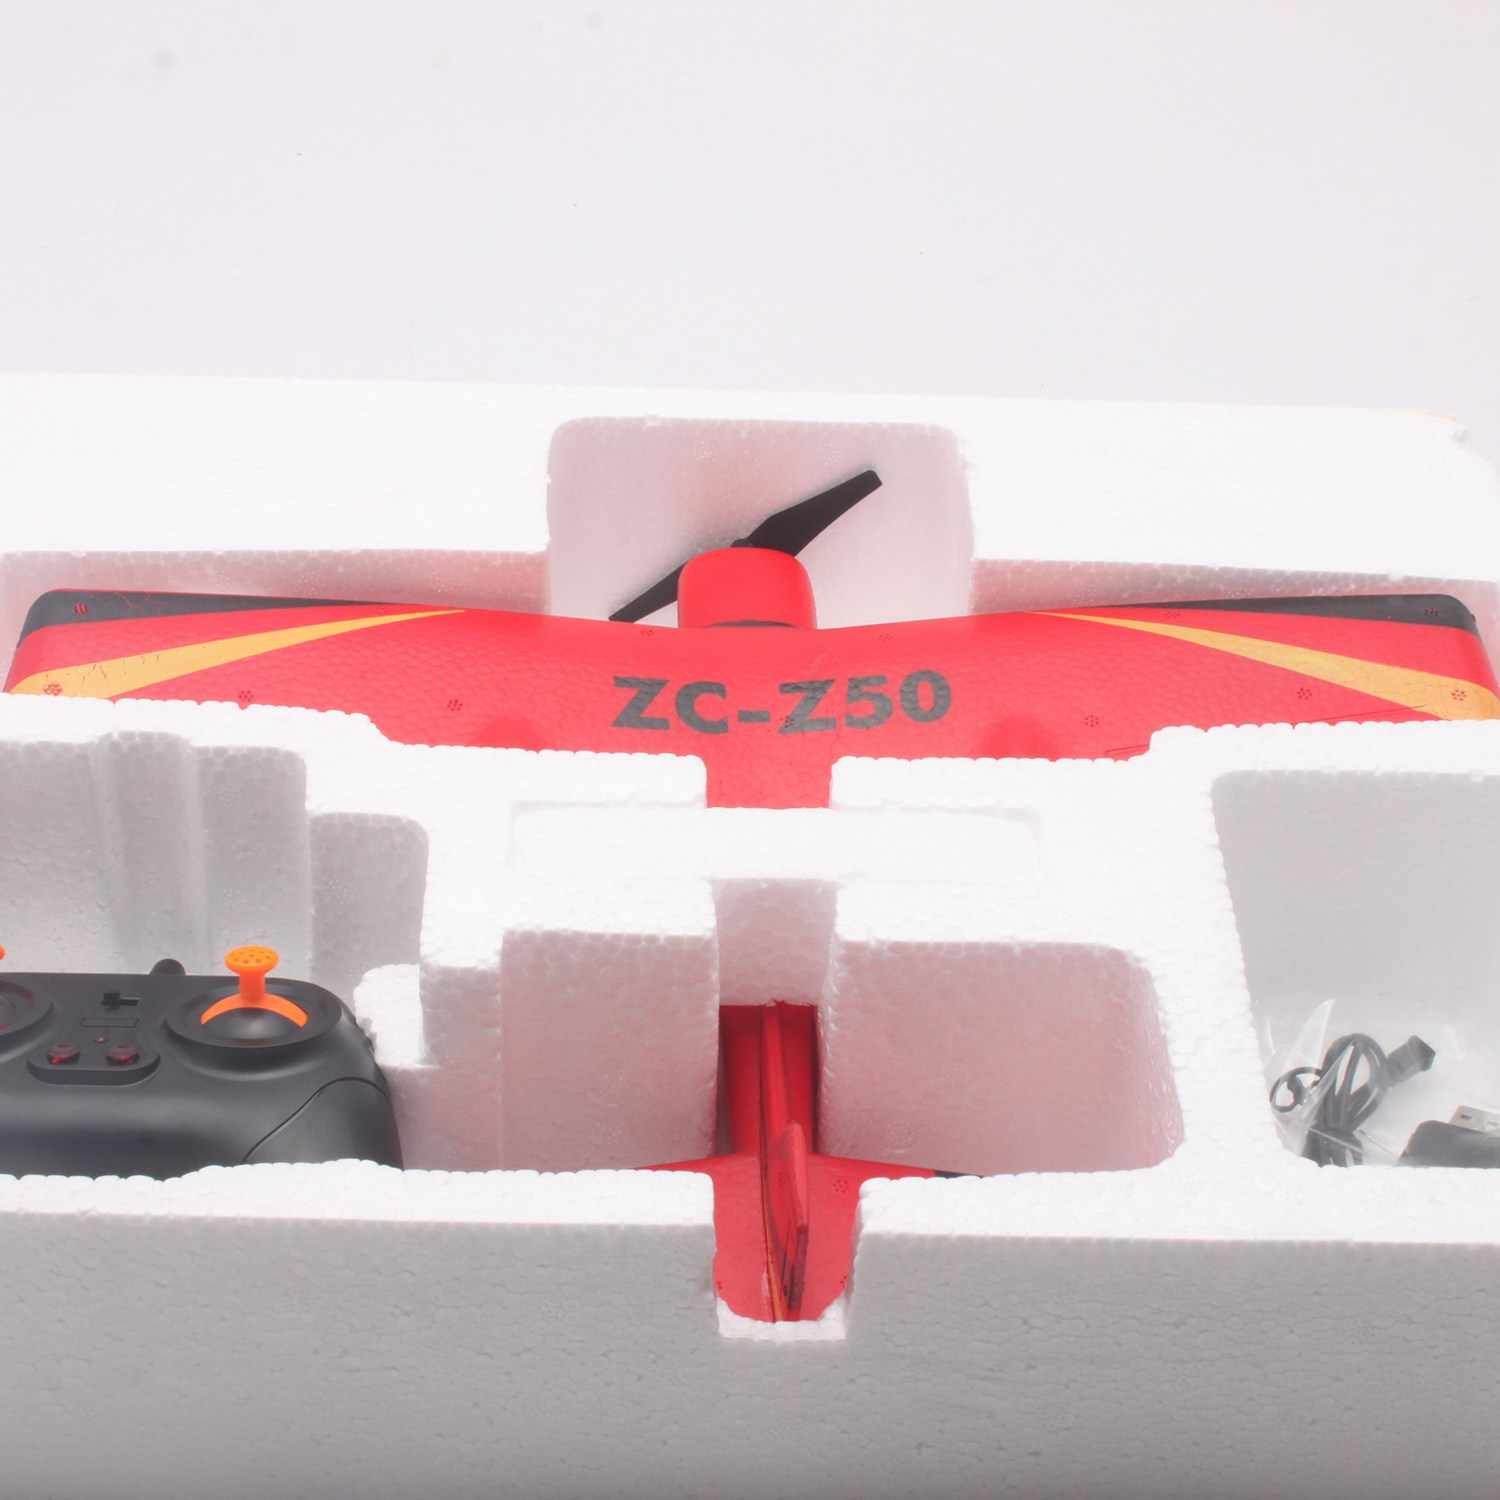 Z50 RC Radio Control Foam Airplanes 2 4G 2CH 34cm Large Wingspan Glider  Fighter Toys Kids Birthday Gift Red Color